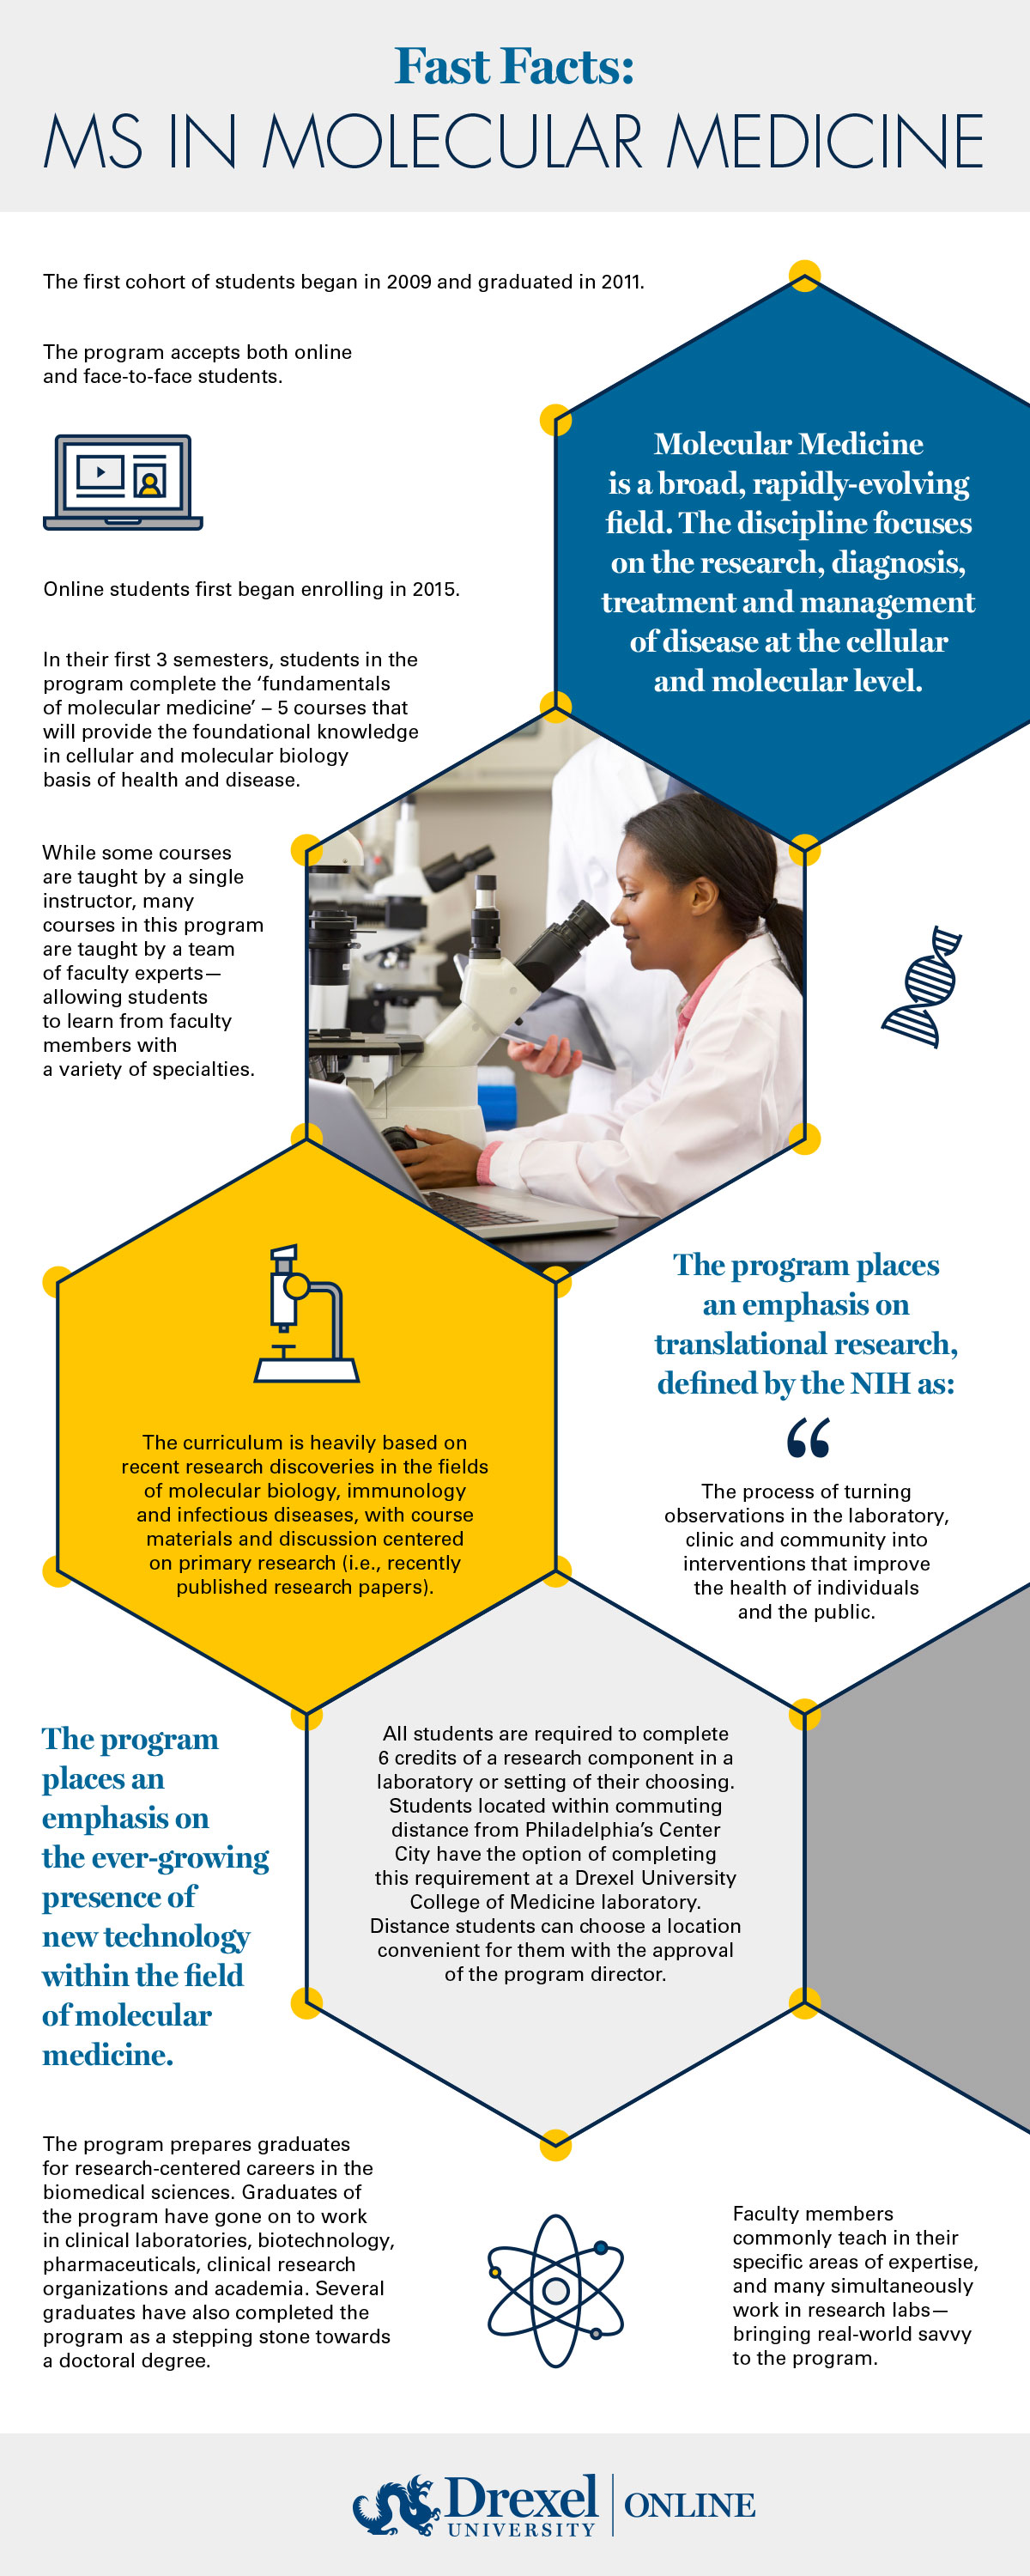 MS in Molecular Medicine Fast Facts Infographic